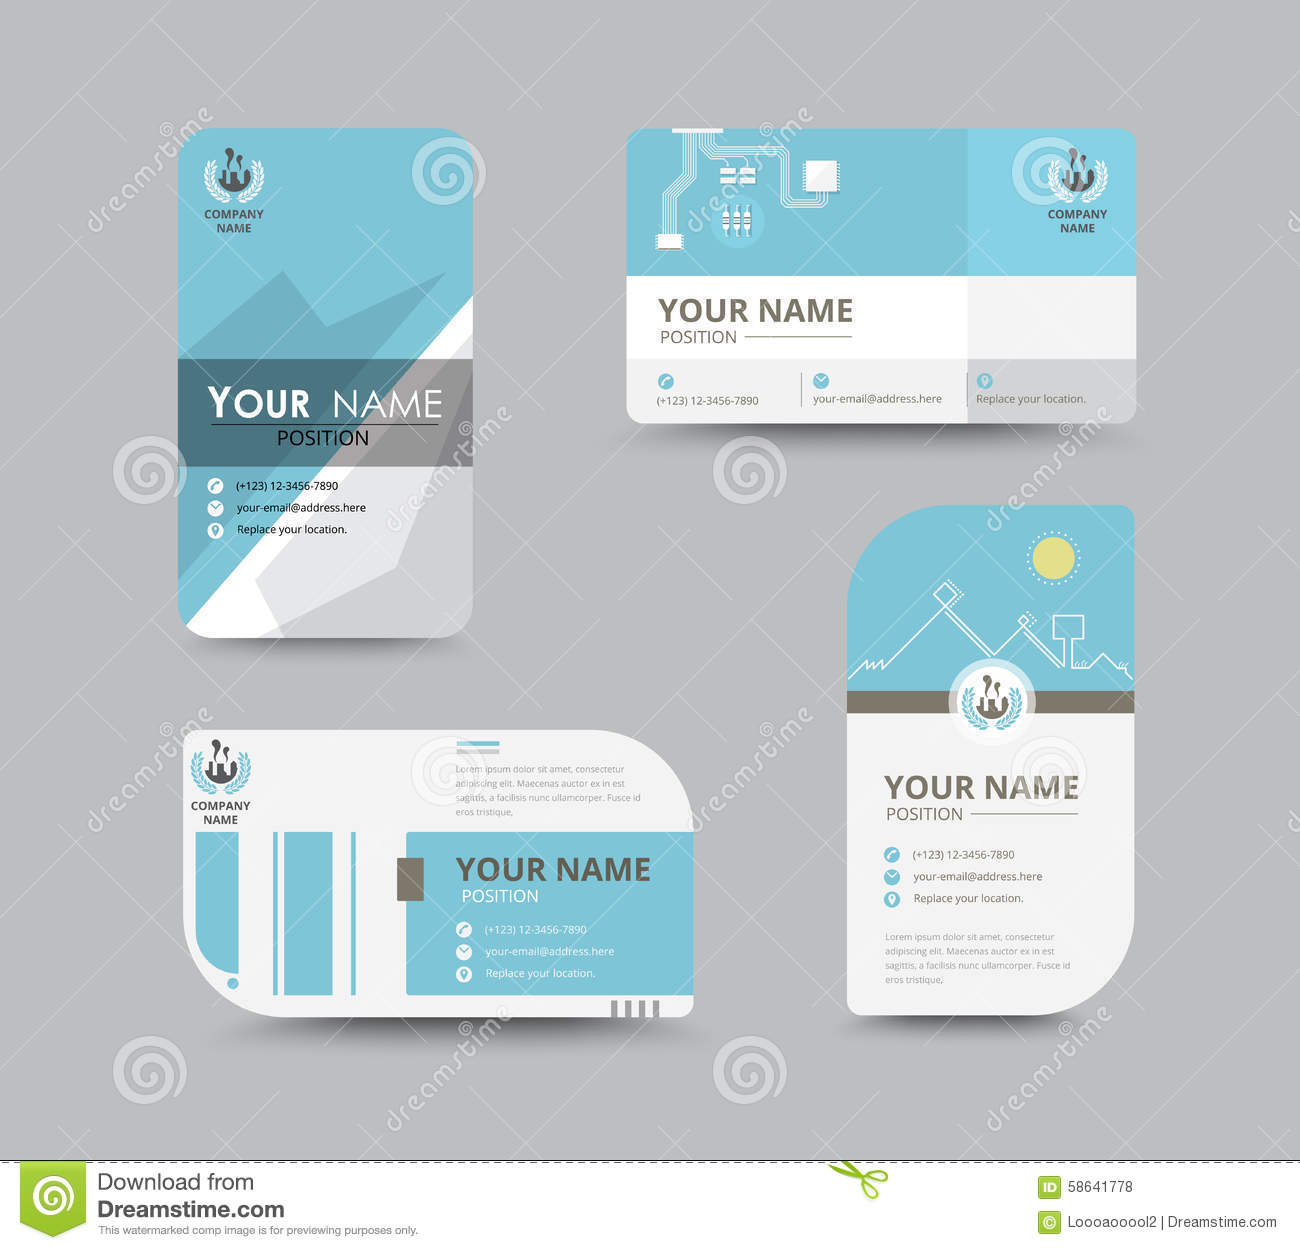 Business name card design for corporation card template vector business name card design for corporation card template vector illustration 58641778 megapixl flashek Gallery